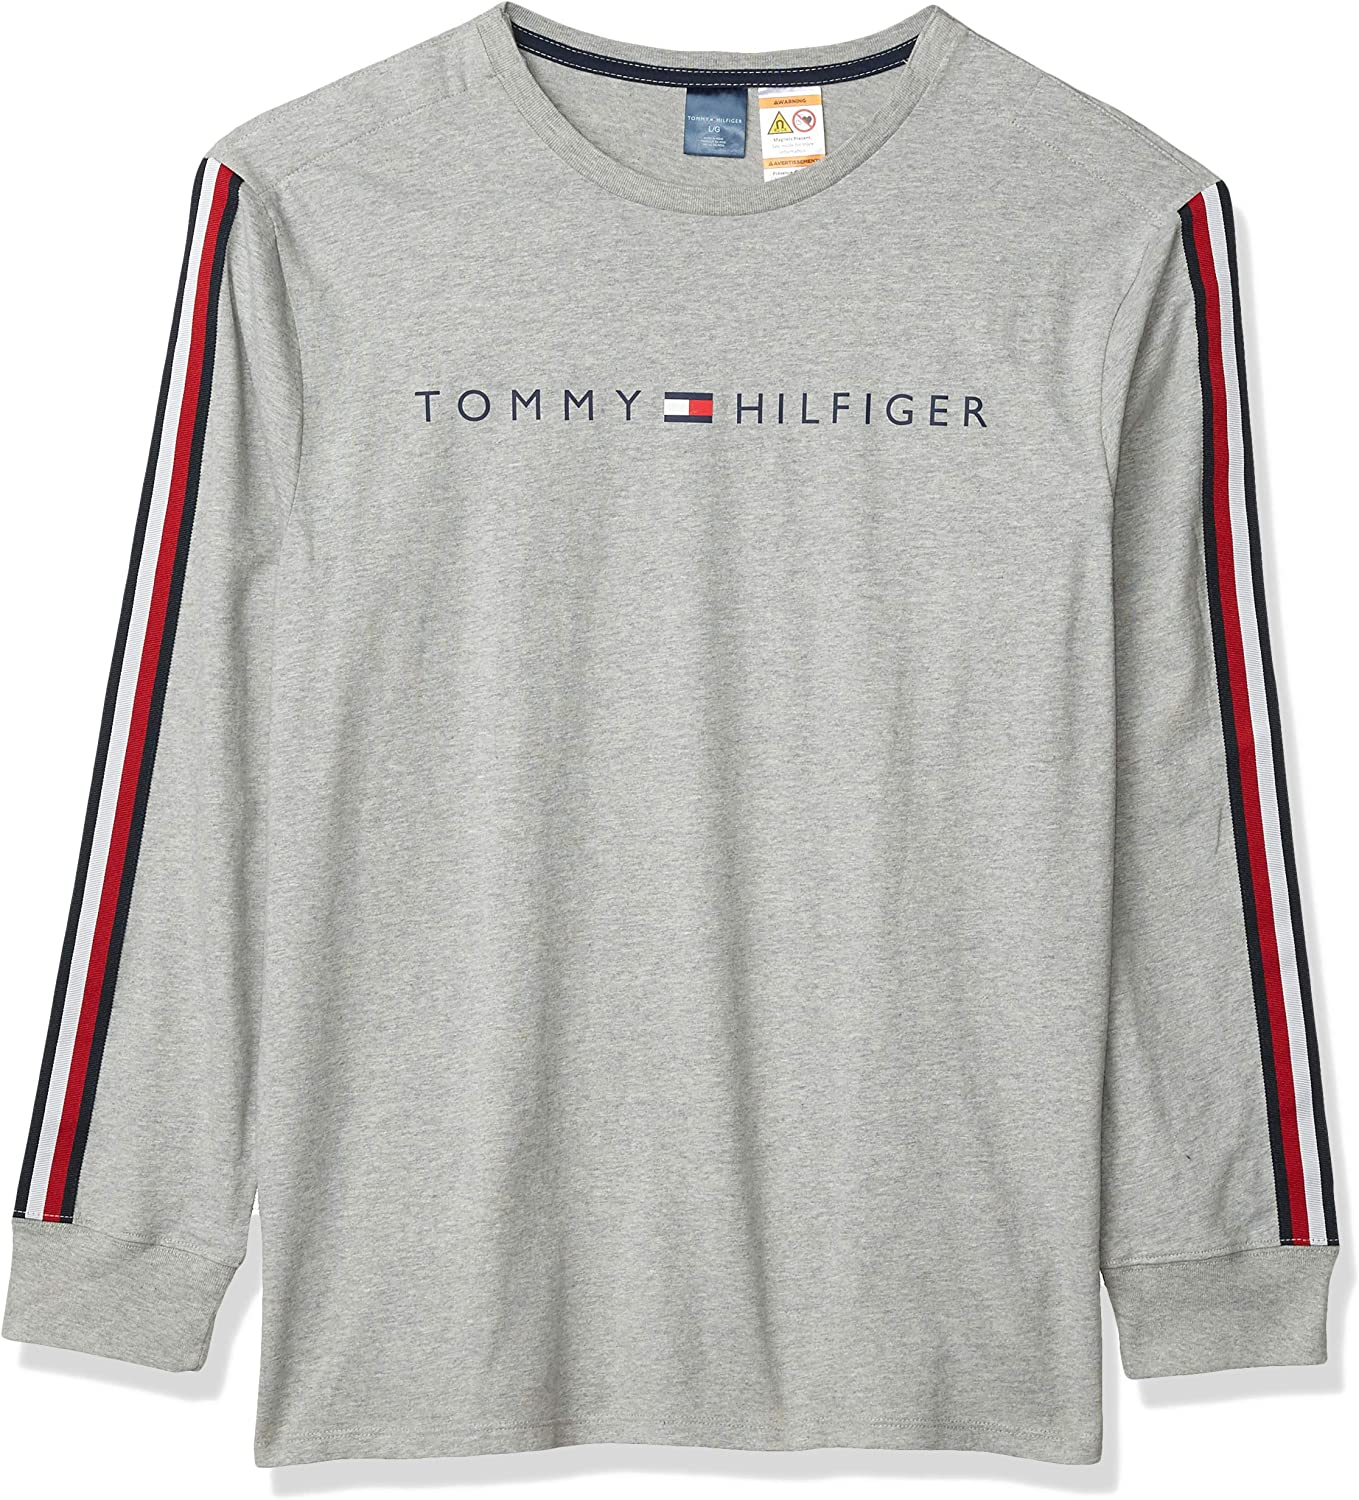 Tommy Hilfiger Men's Adaptive Long Sleeve 年中無休 T Br Shirt with Velcro お買い得品